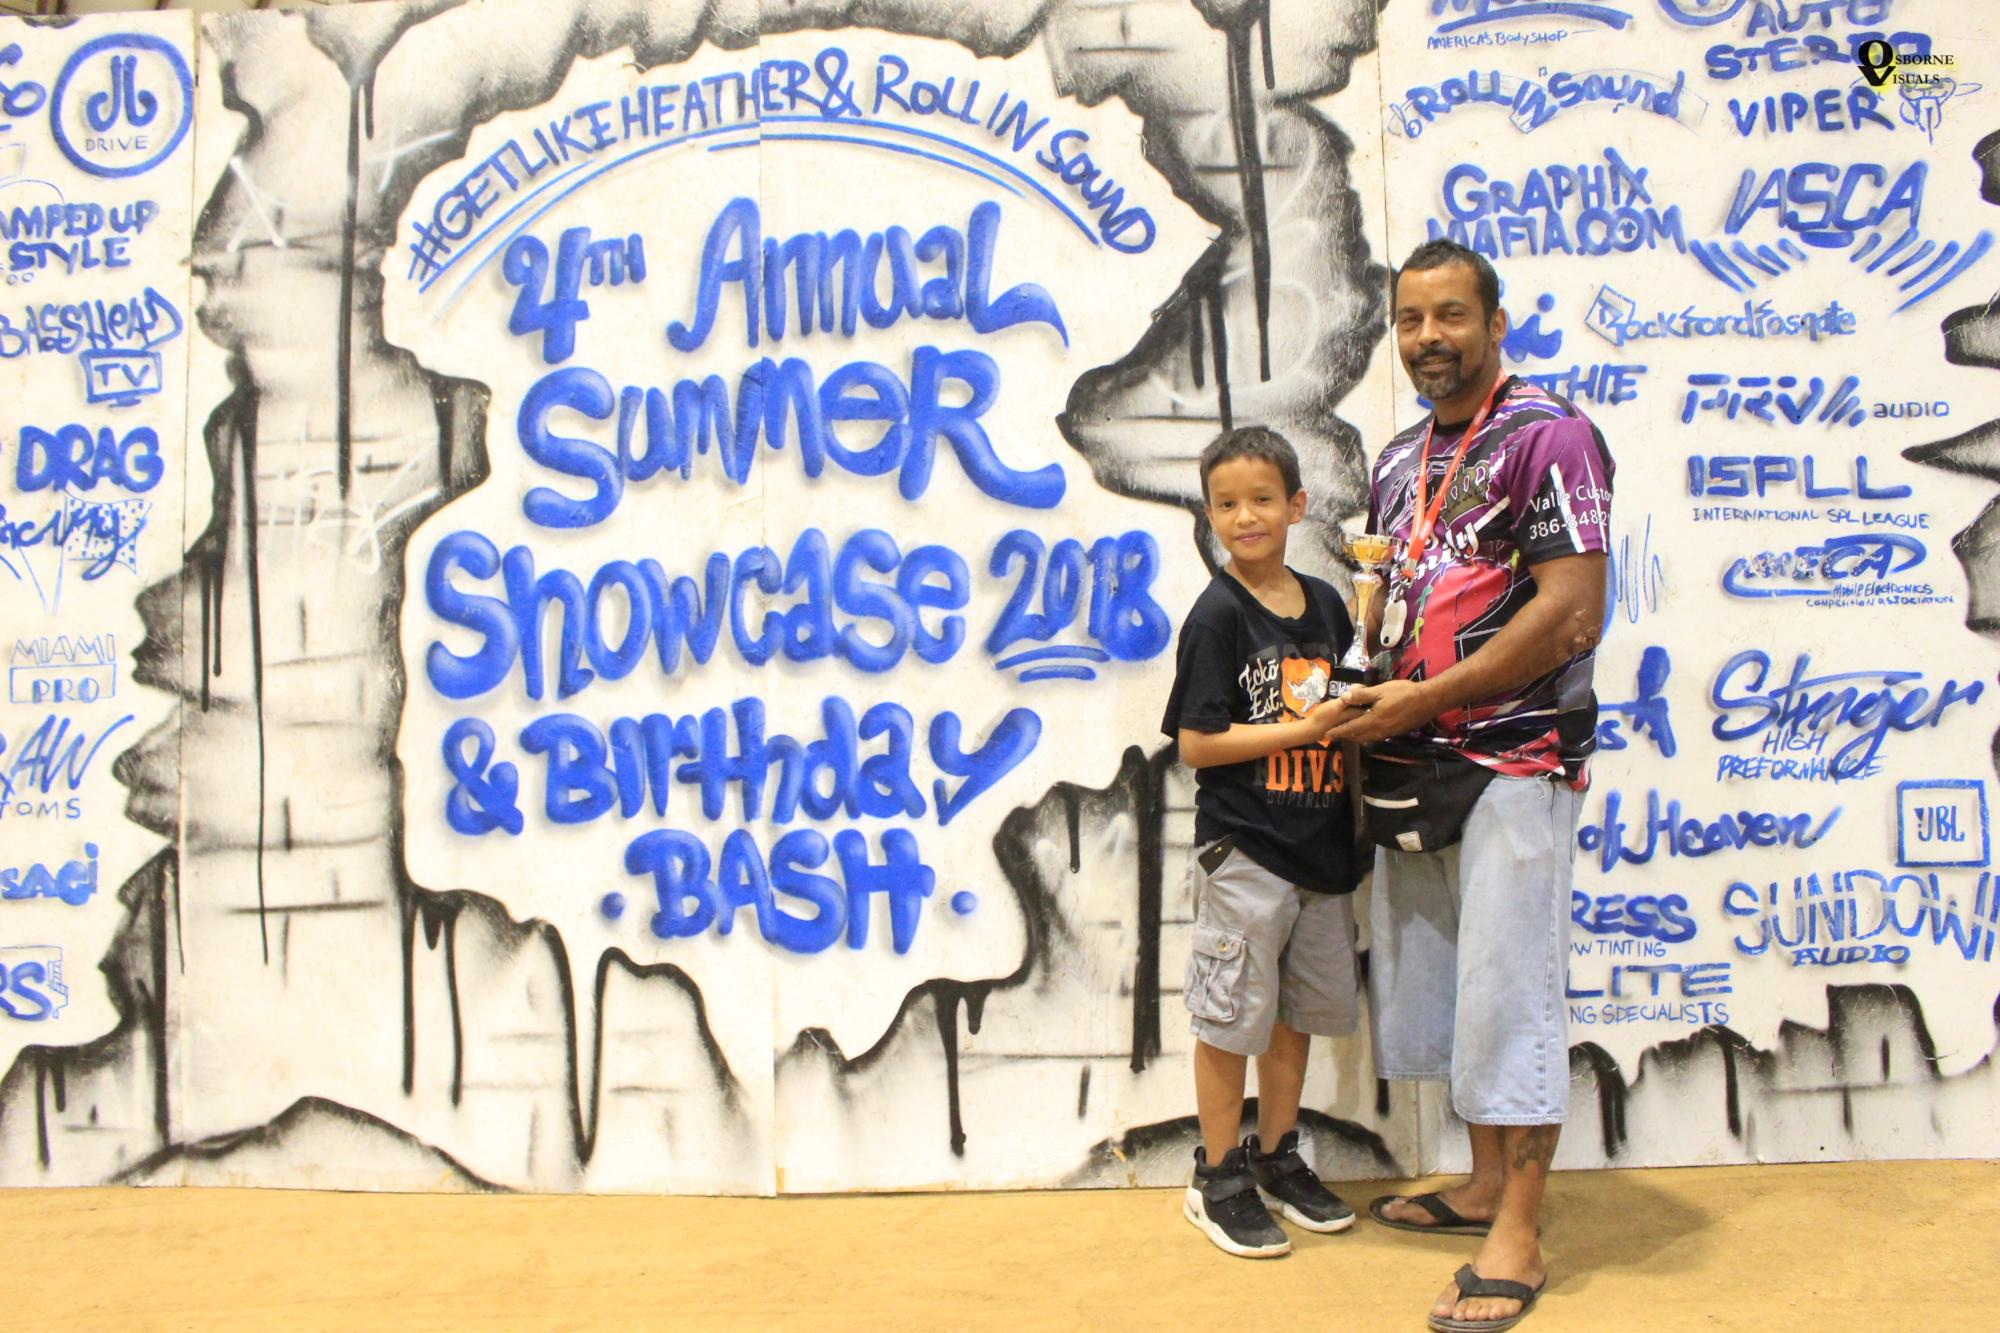 4th_annual_Summer_Showcase__258_.jpg